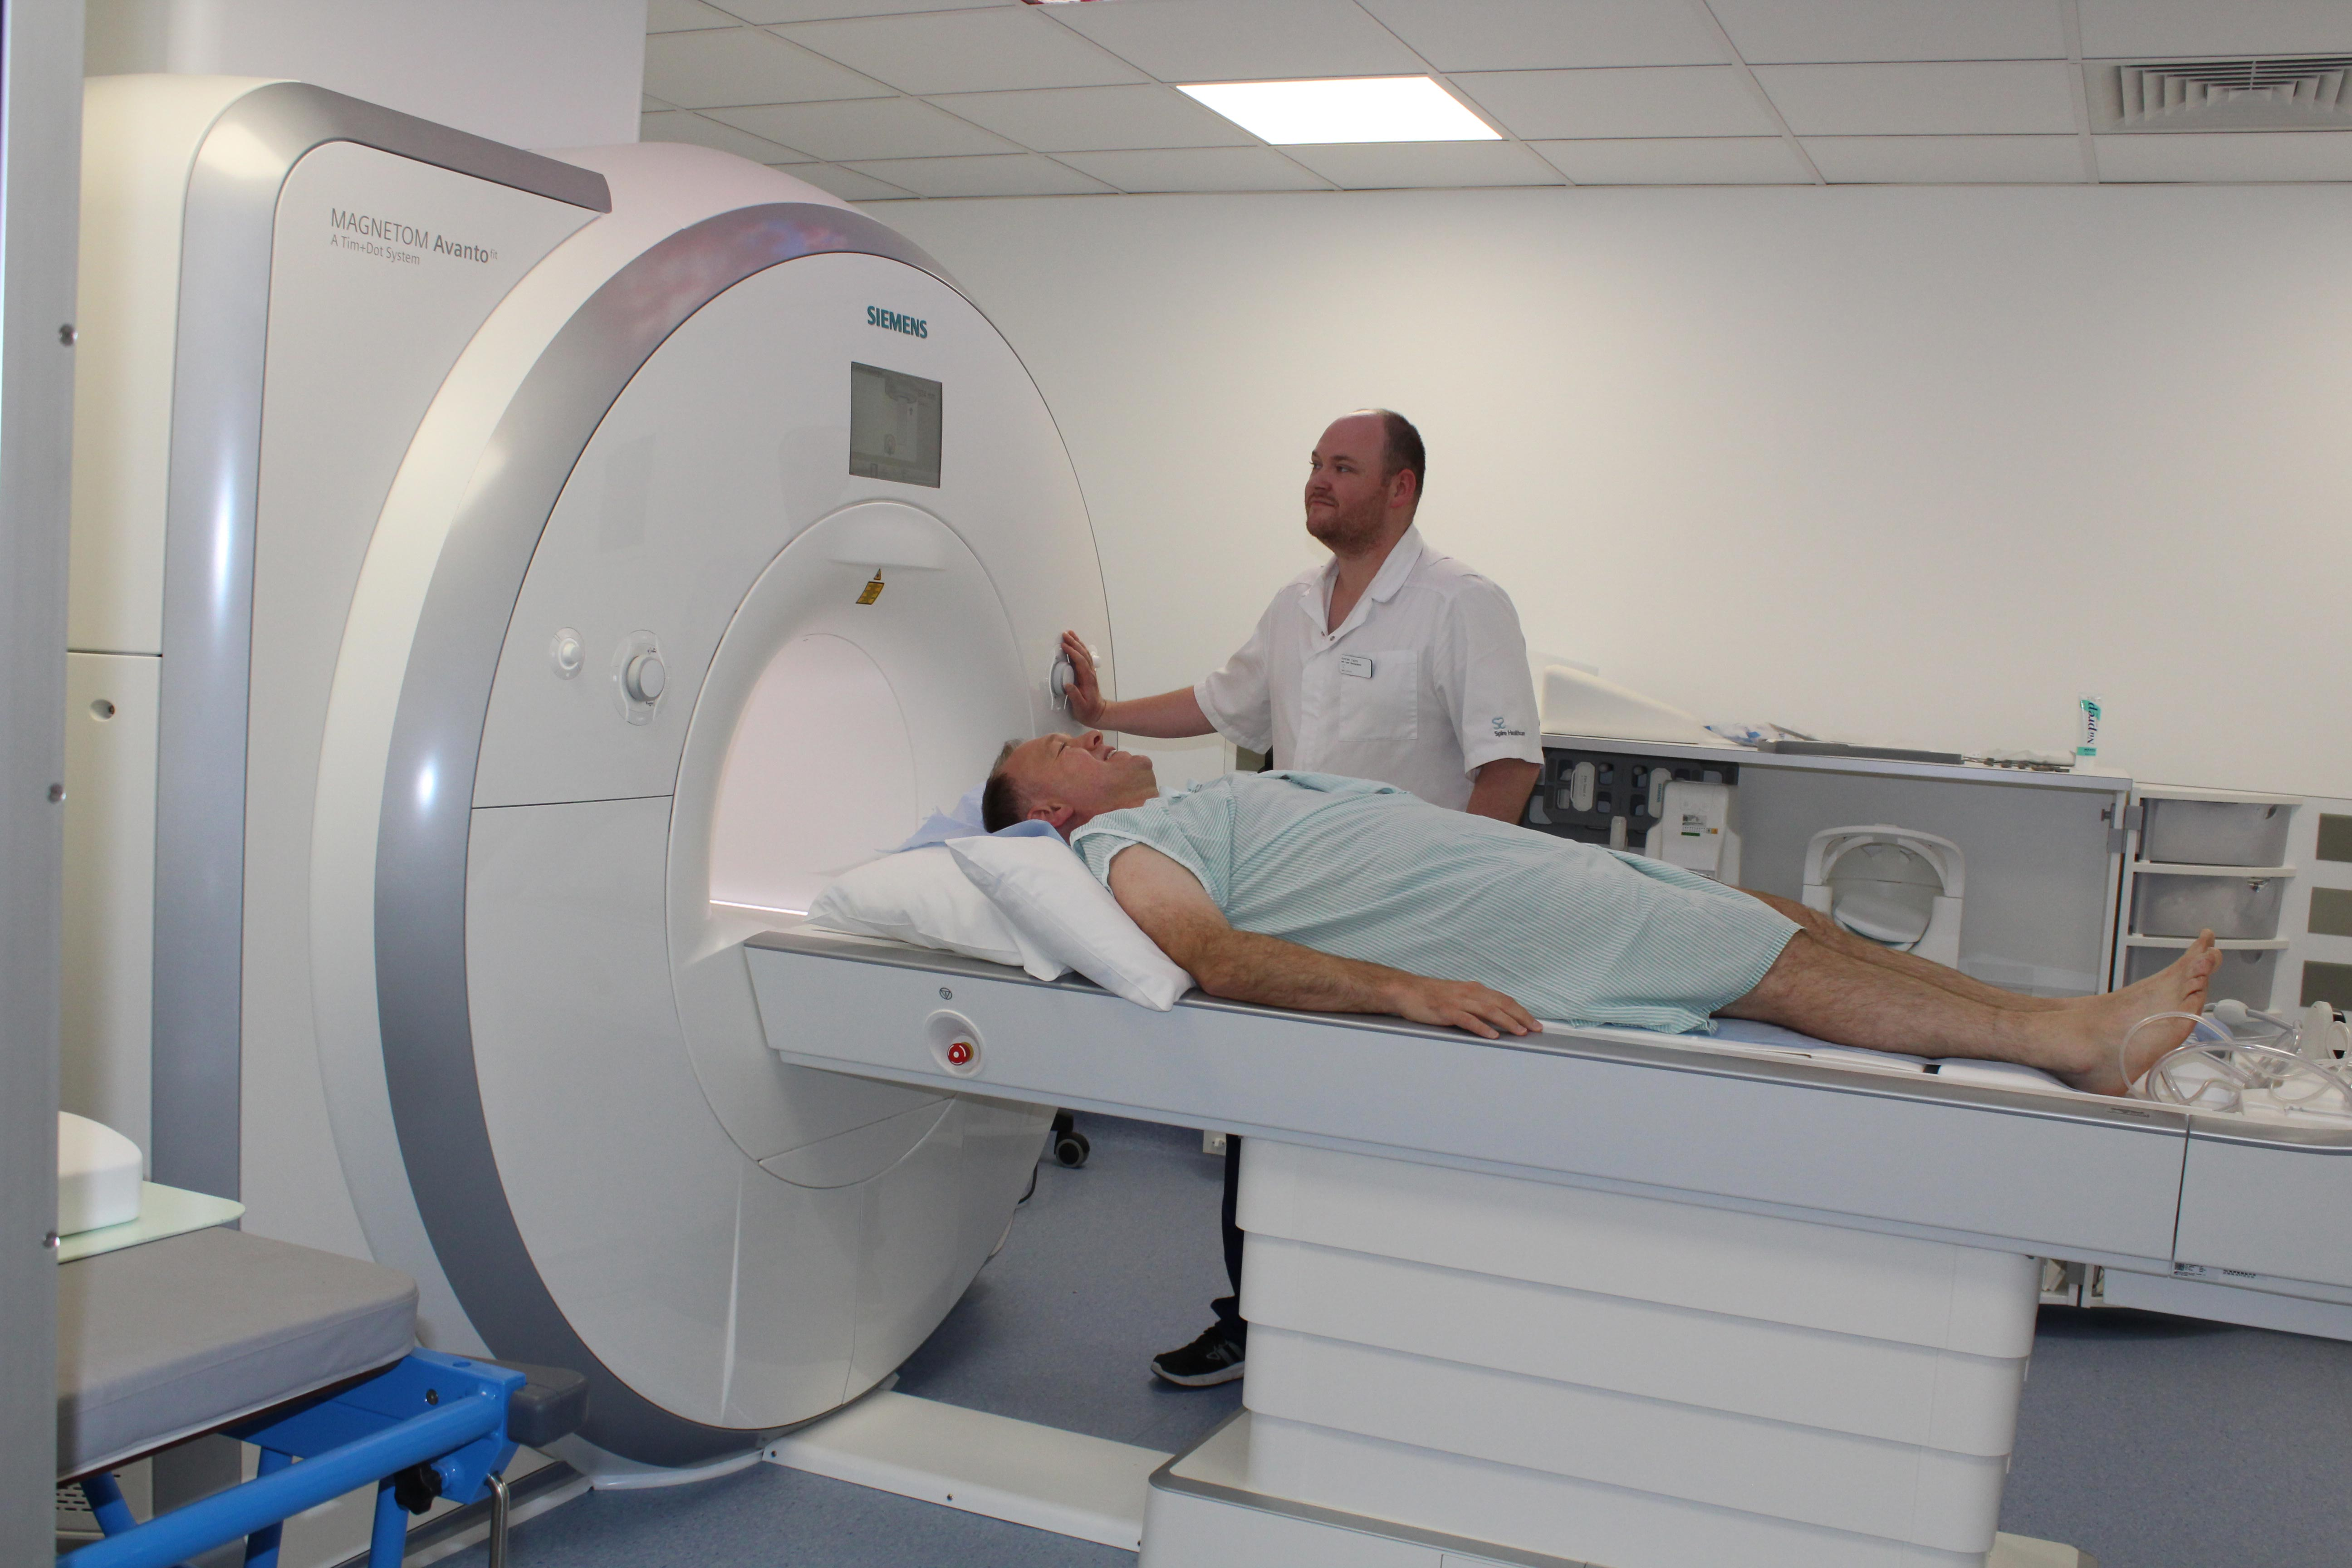 What to expect from an MRI scan